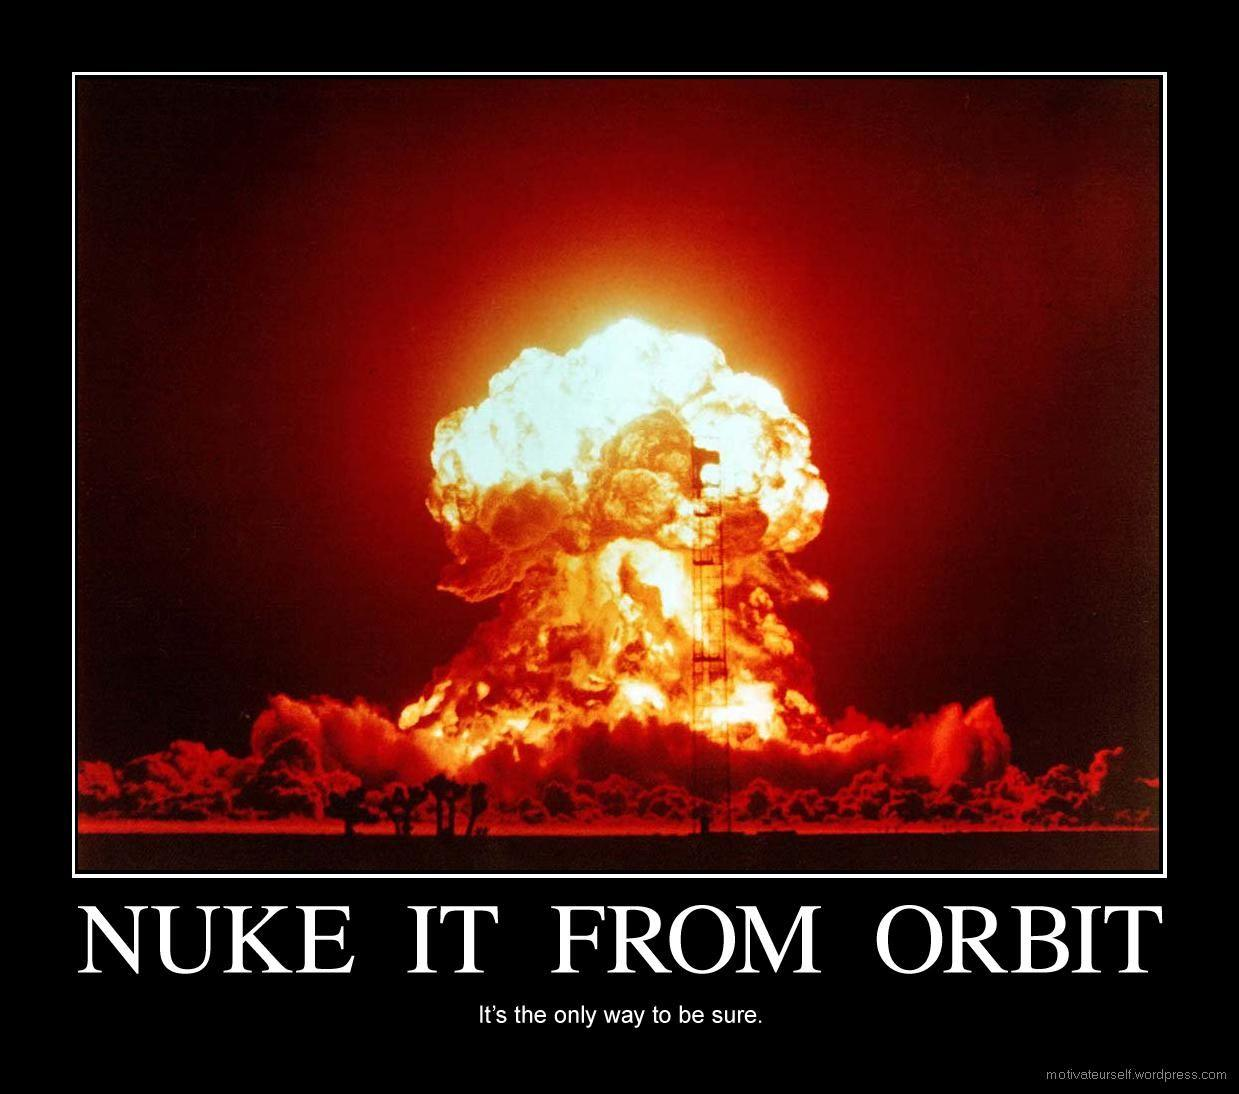 nuke-it-from-orbit